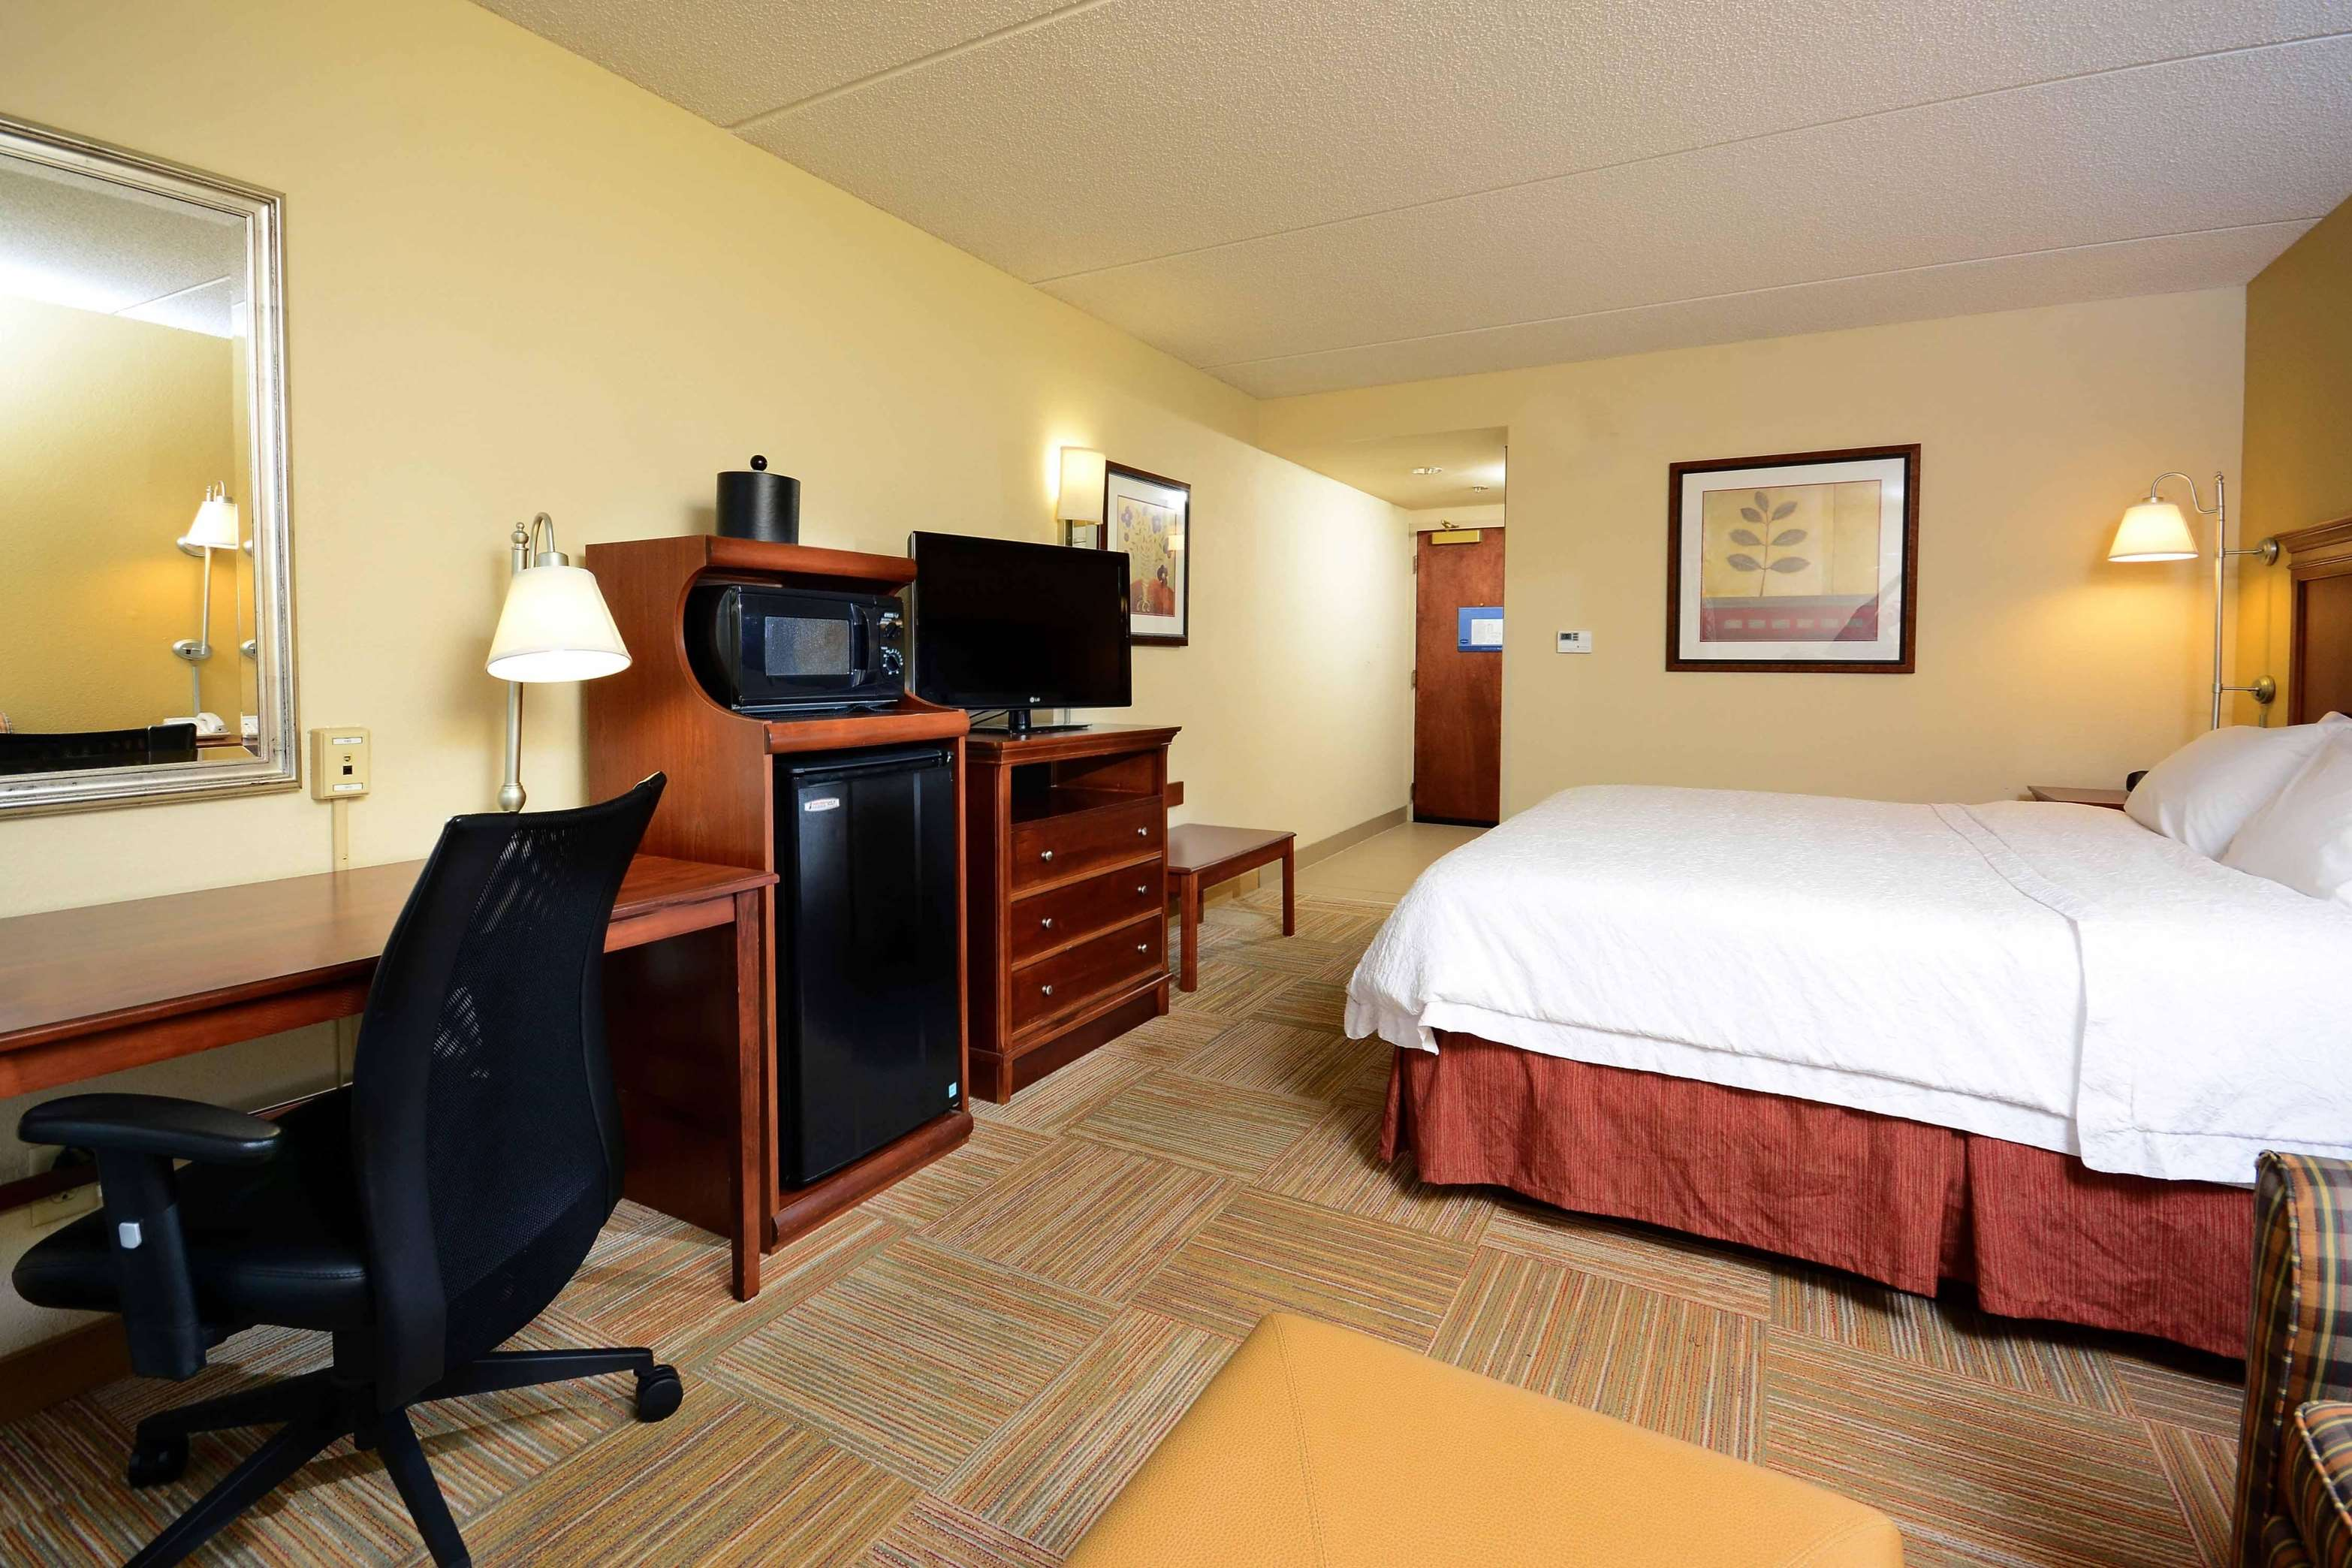 Aceesible Room with Free Breakfast